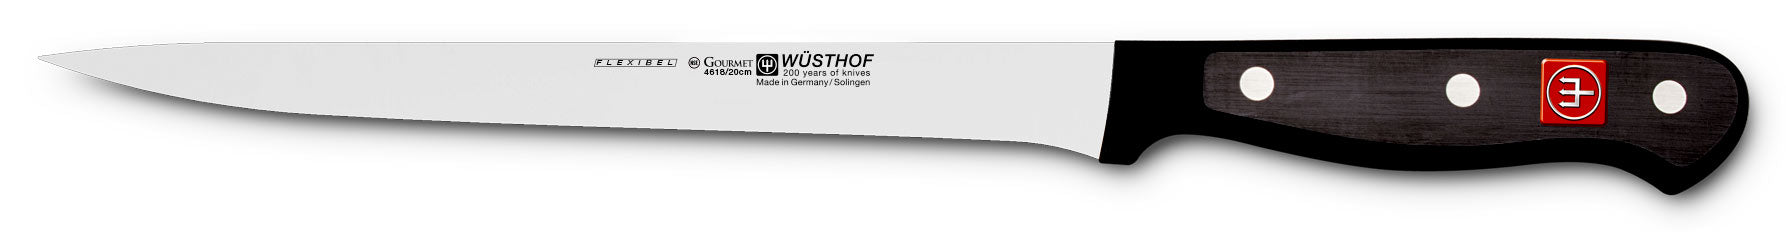 "Wusthof Gourmet Fish Fillet Knife, 8"" (20cm), Flexible - 4618-20"